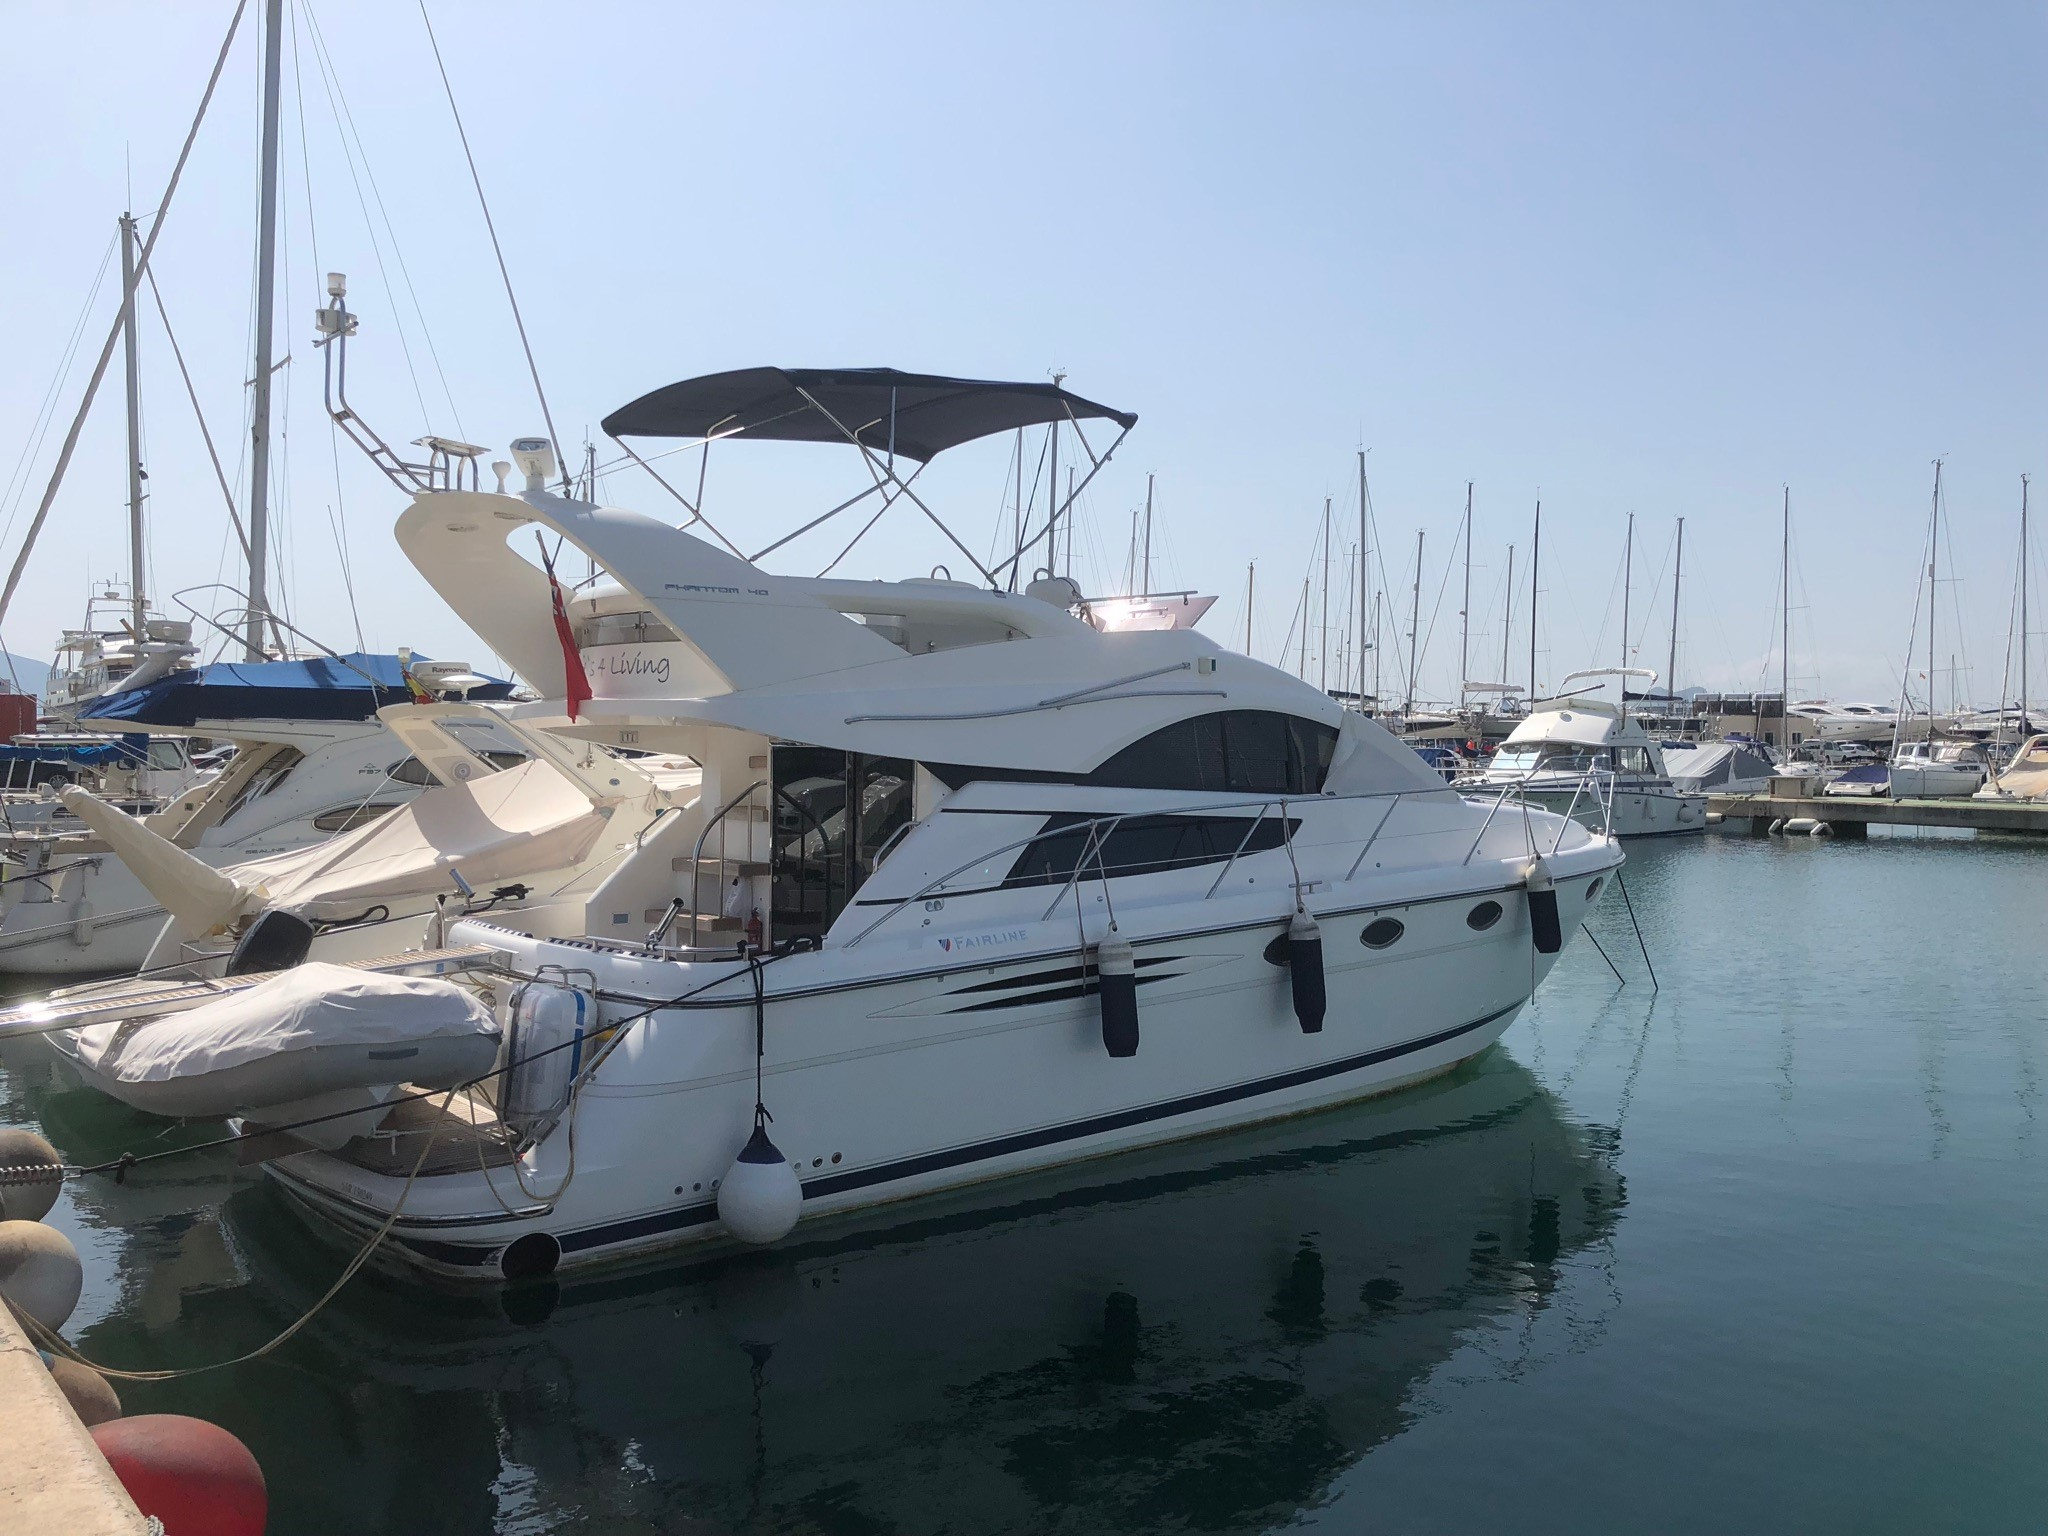 Fairline Phantom 40 Fairline Phnatom 40